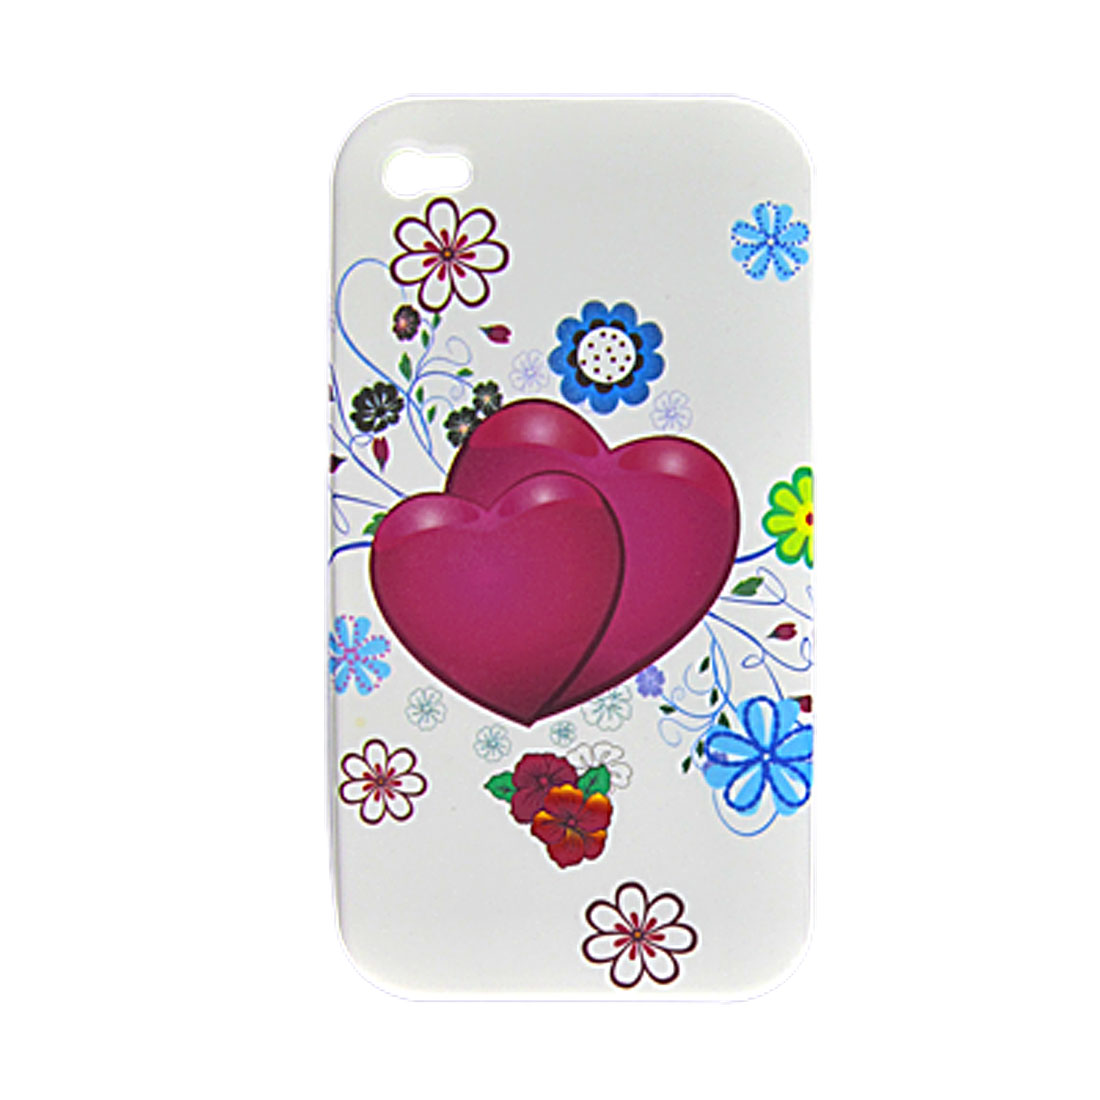 Heart Flower Pattern Soft Plastic Case + Screen Protector for iPhone 4 4G